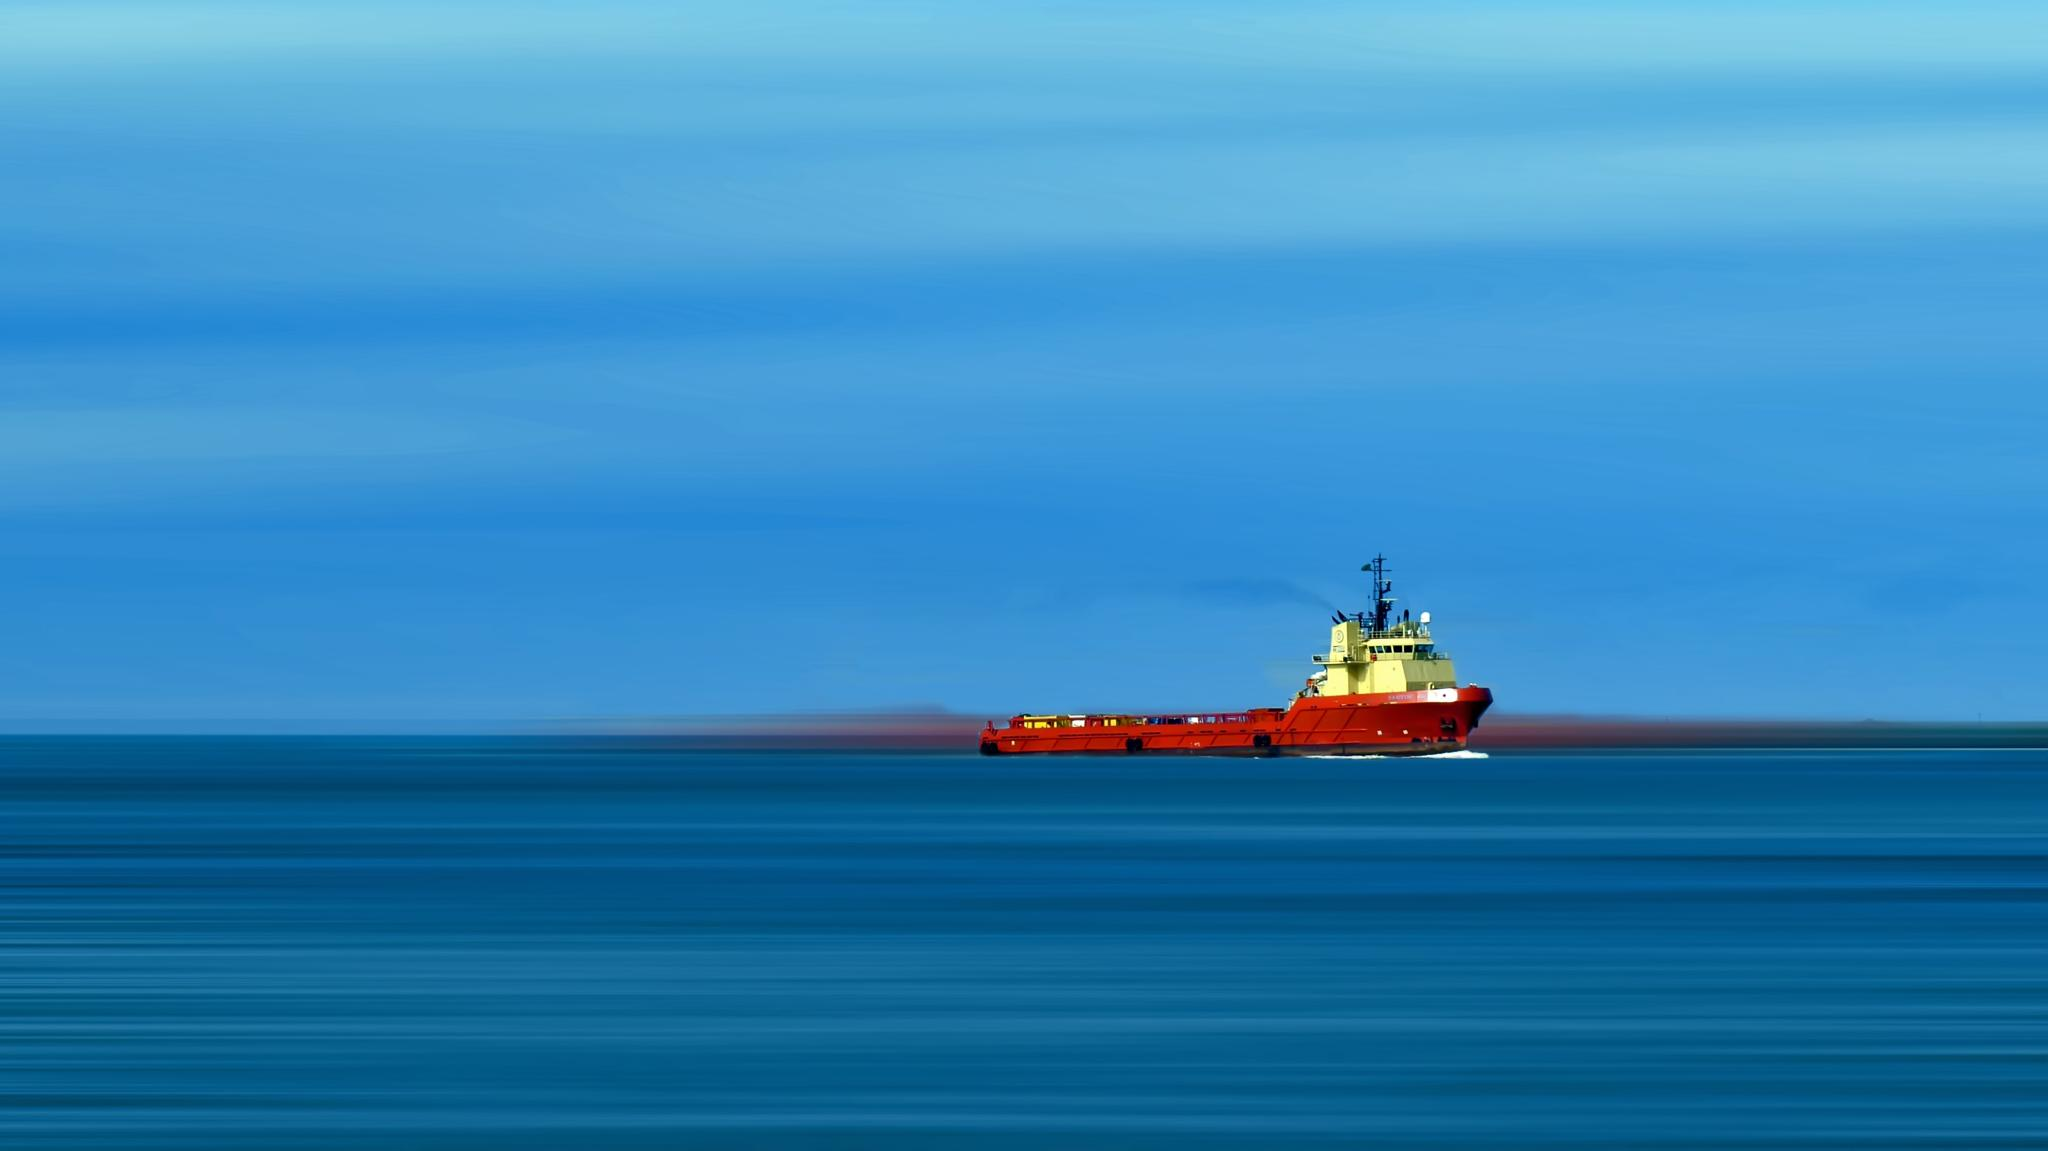 The ship in the blue sea by rubem.campos